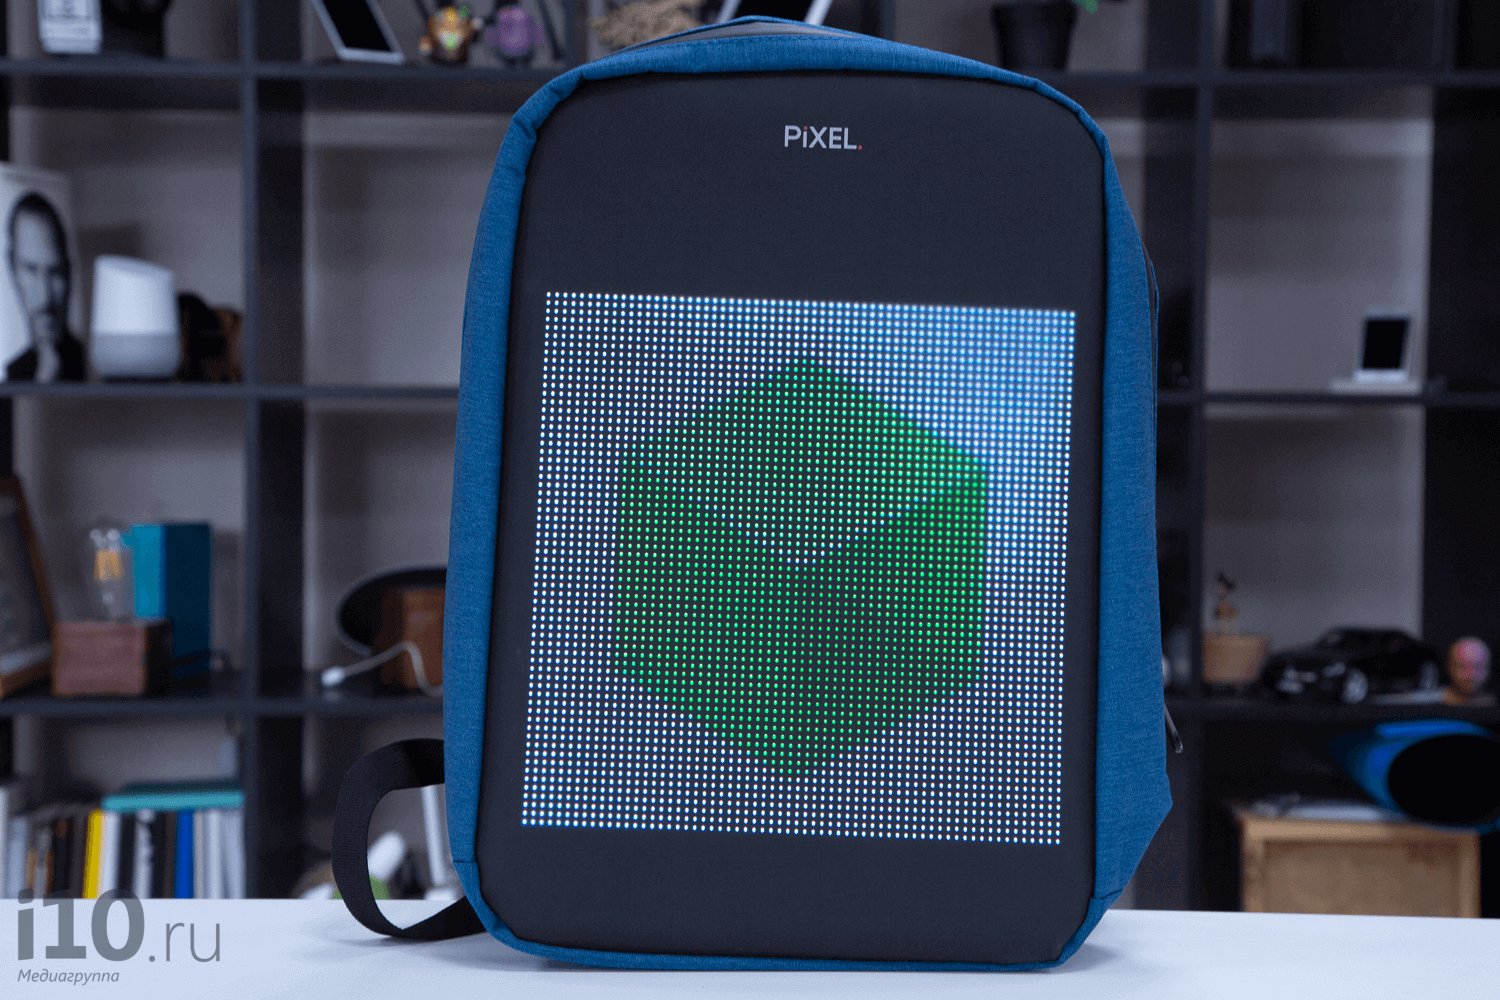 Overview of PIXEL — first in the world of backpacks with a screen